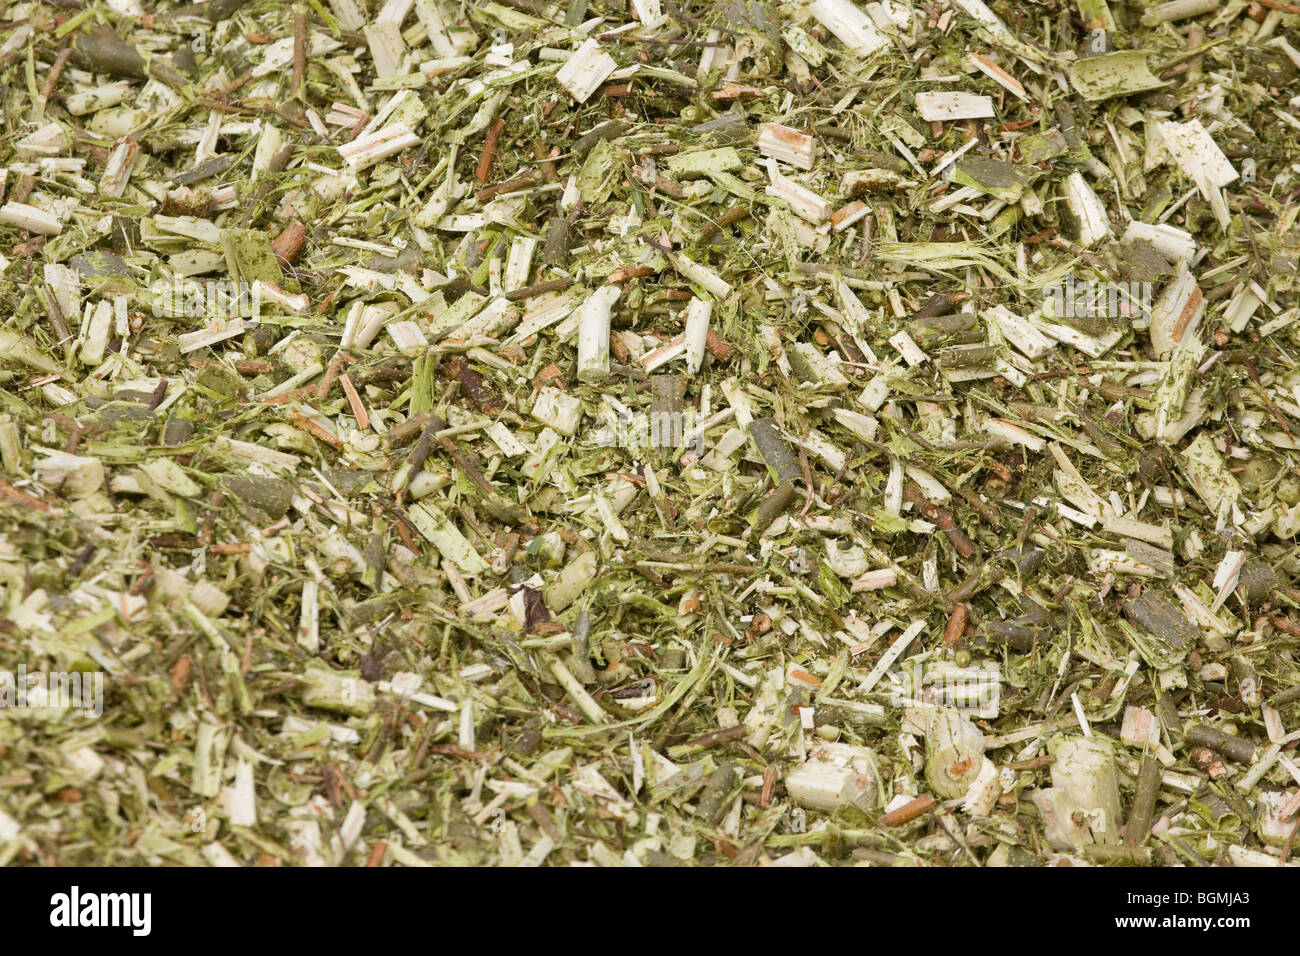 Coppice Willow For Biomass For Power Stations - Stock Image